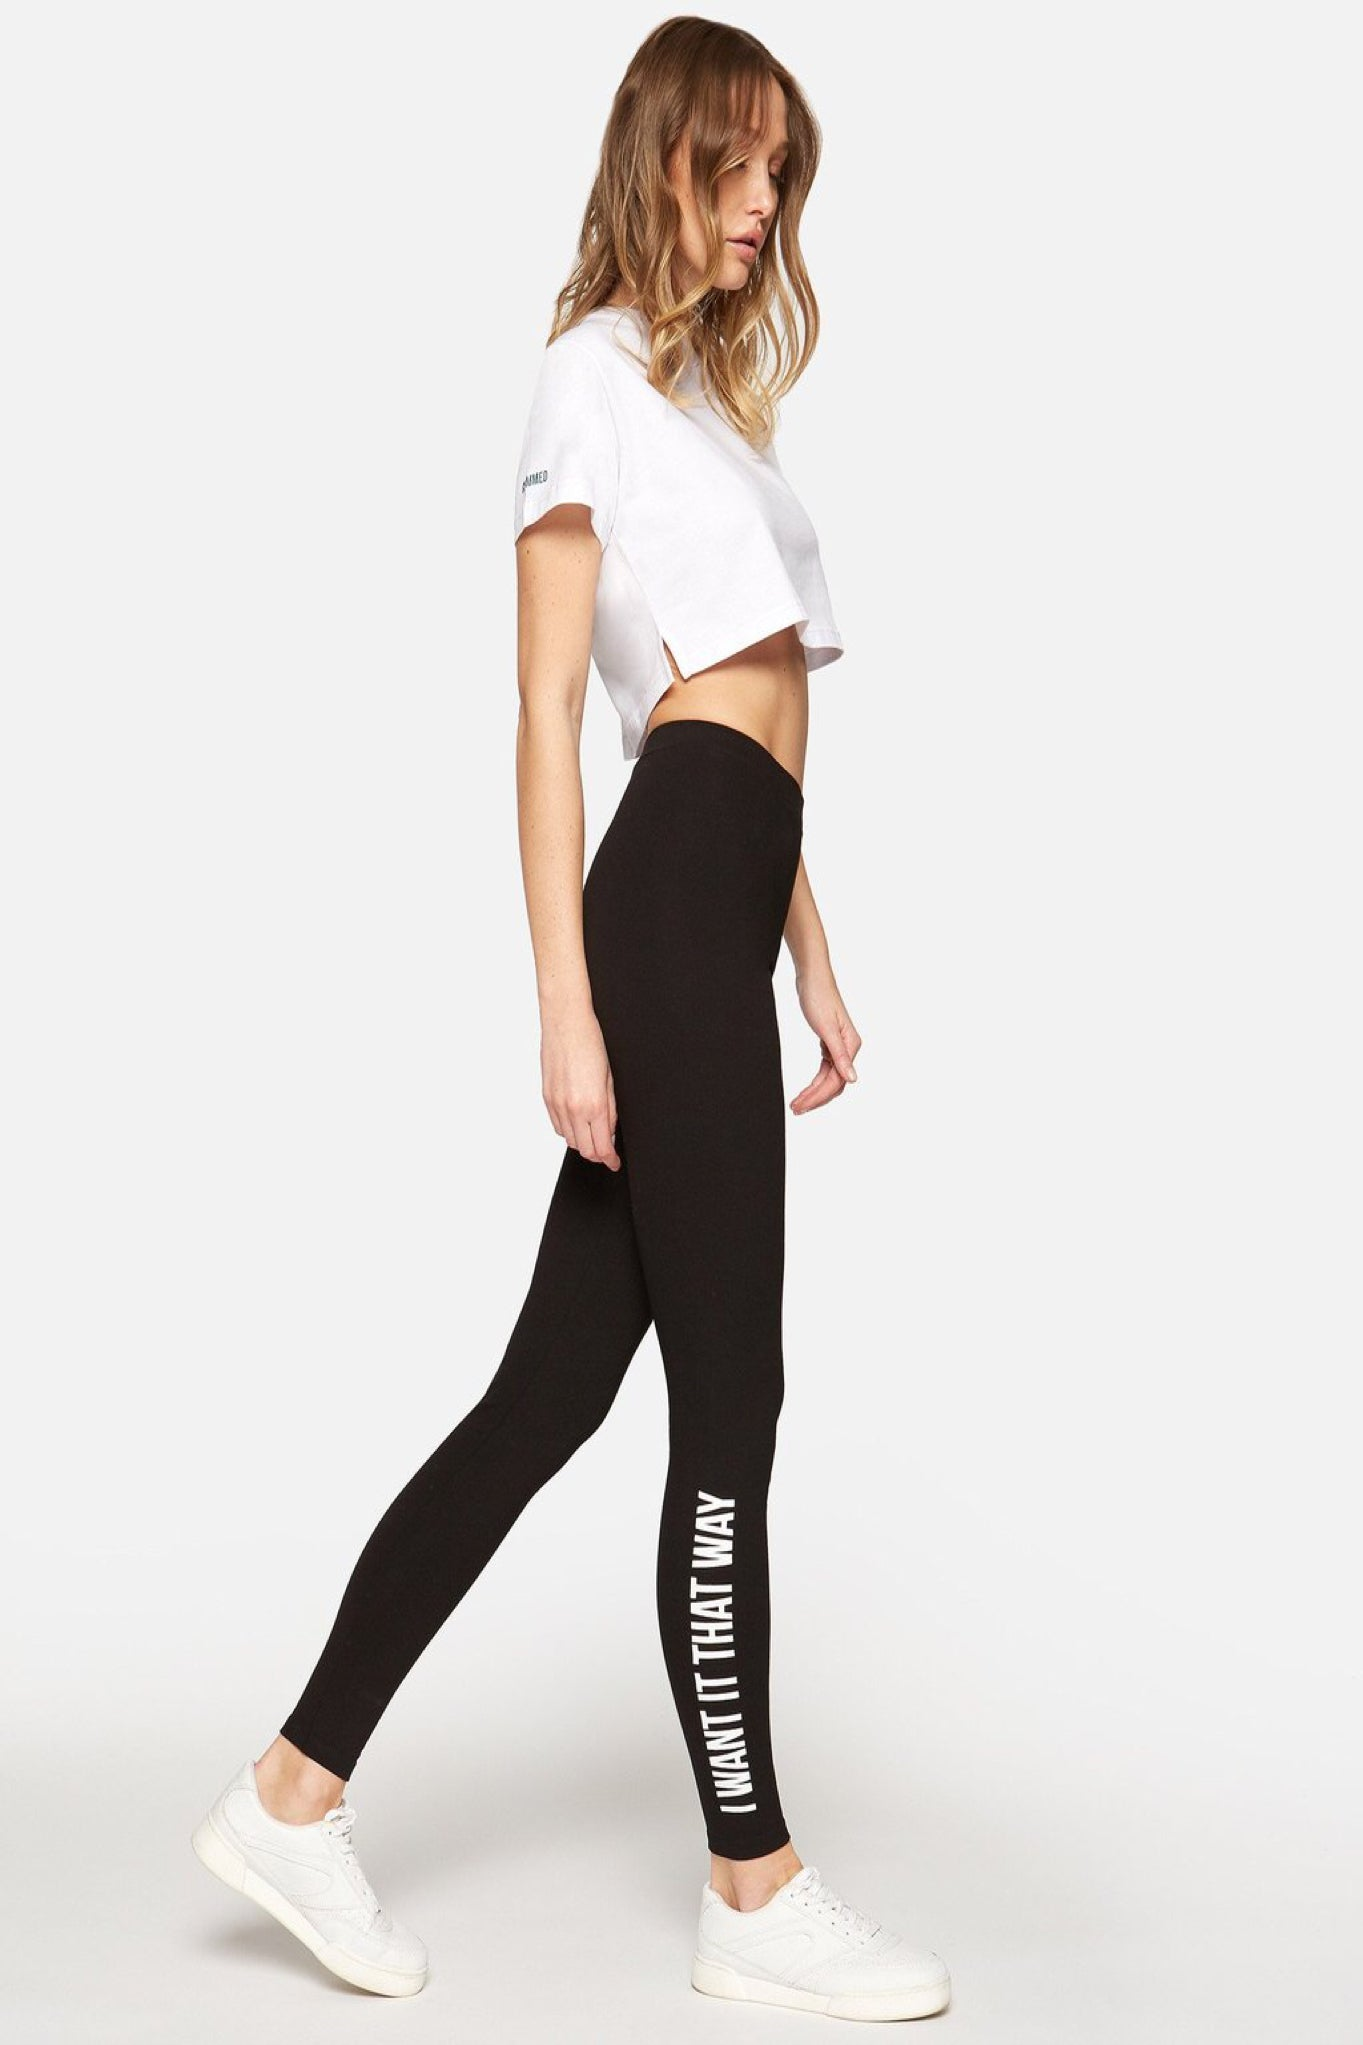 I Want It That Way Leggings - The Bobby Boga